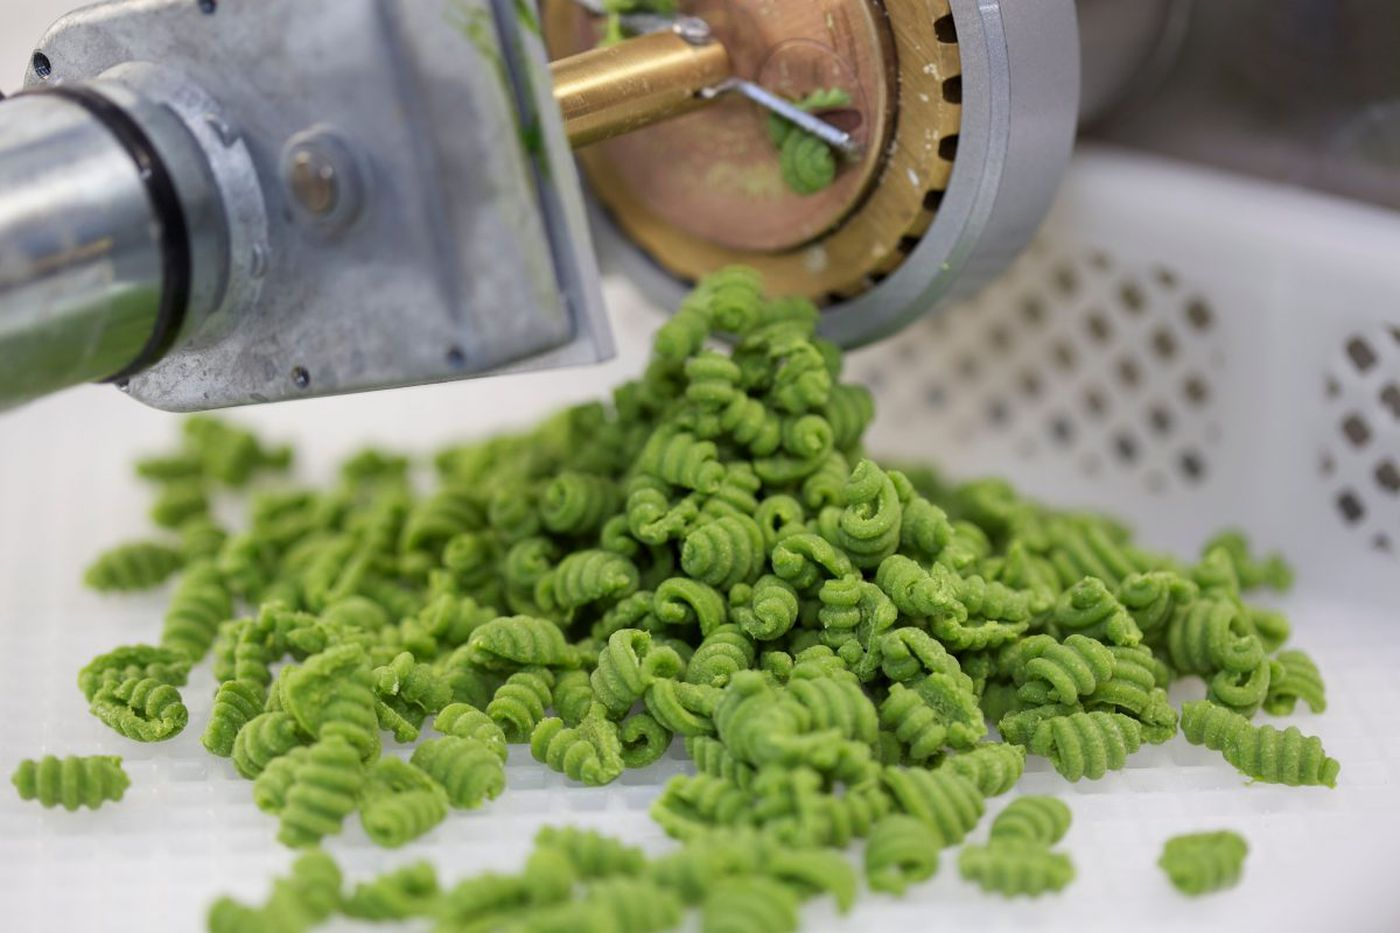 Pasta revolution hits extruder overdrive, and creativity, collaborations, and profits emerge